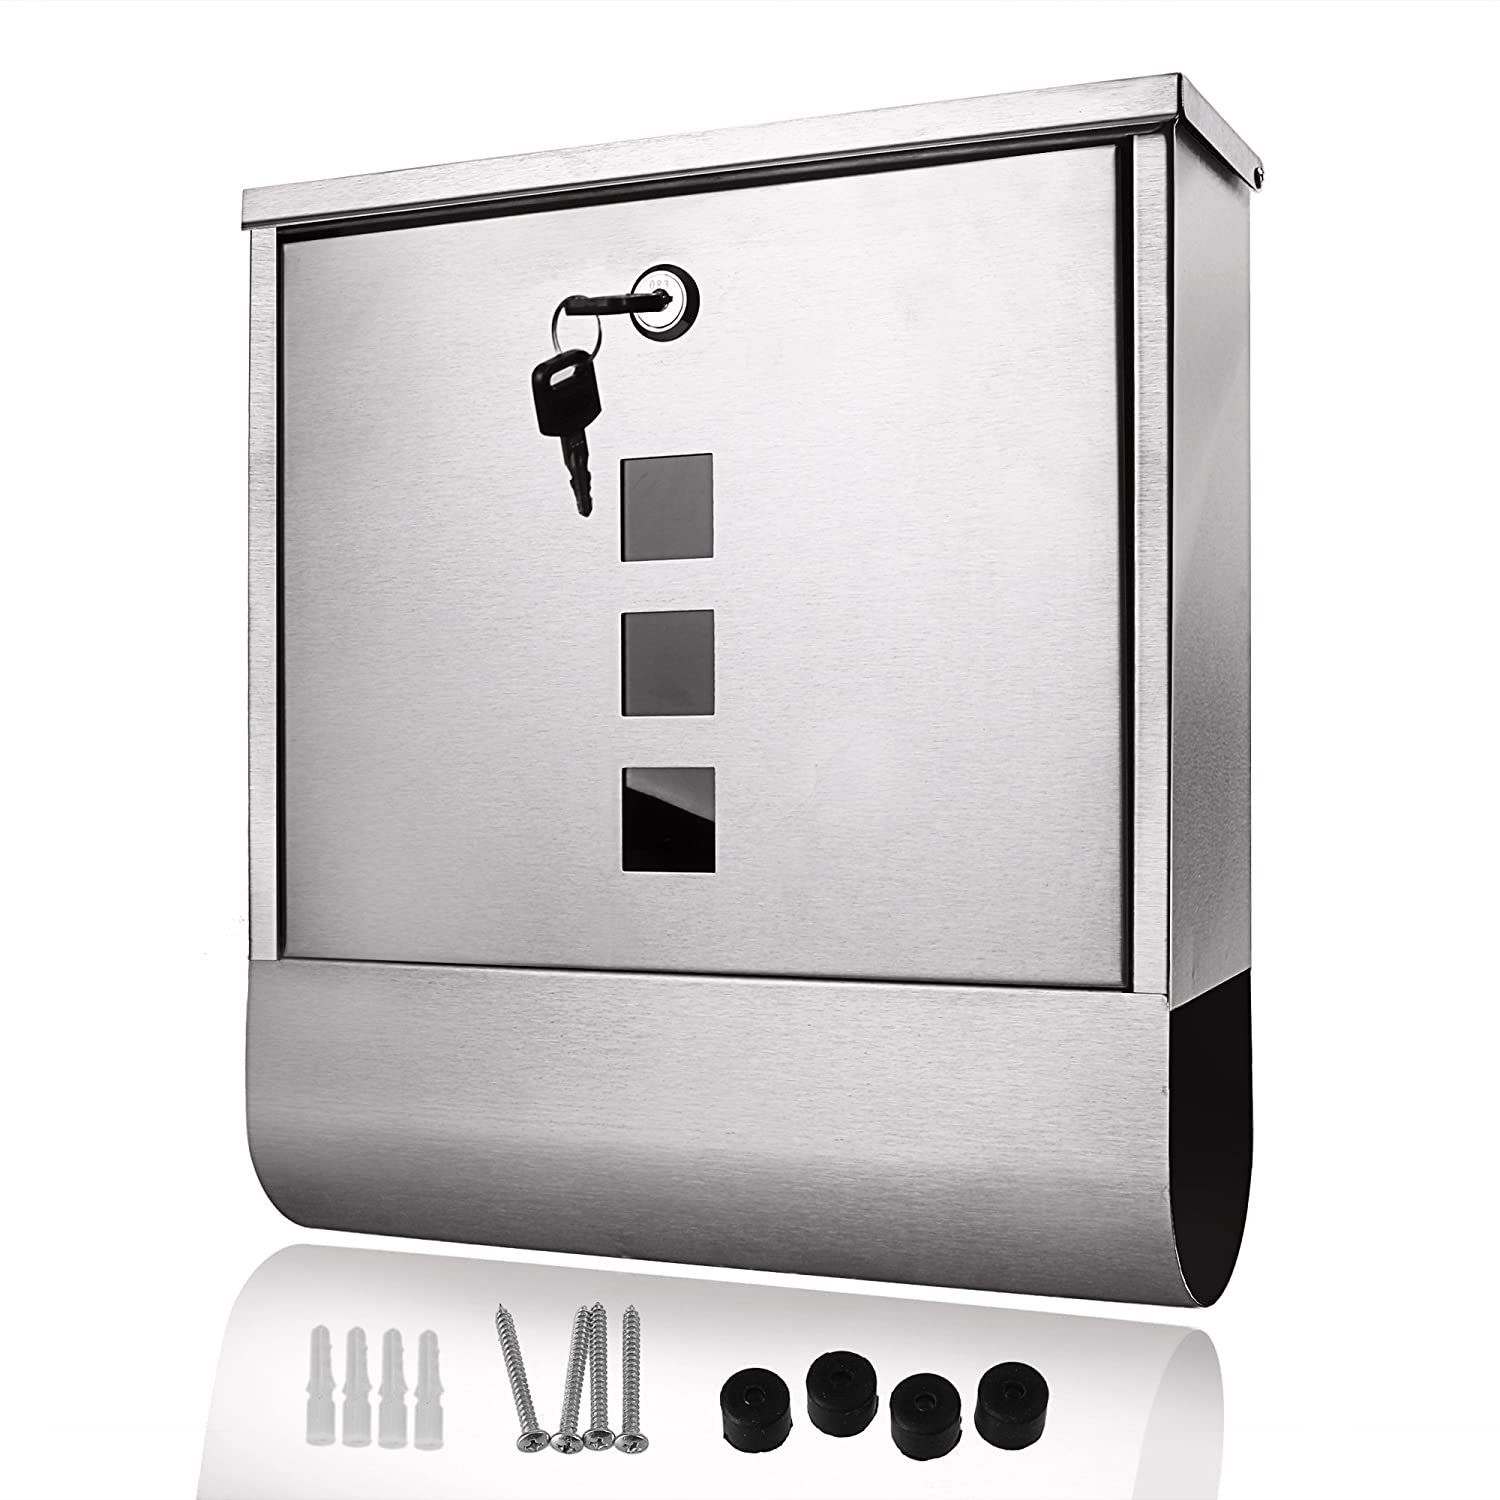 Mailbox stainless steel locking mail box letterbox postal box modern - Homdox Stainless Steel Wall Mounted Mailbox Lockable Letterbox Post Box With Retrieval Door Newspaper Roll Us In Stock Amazon Com